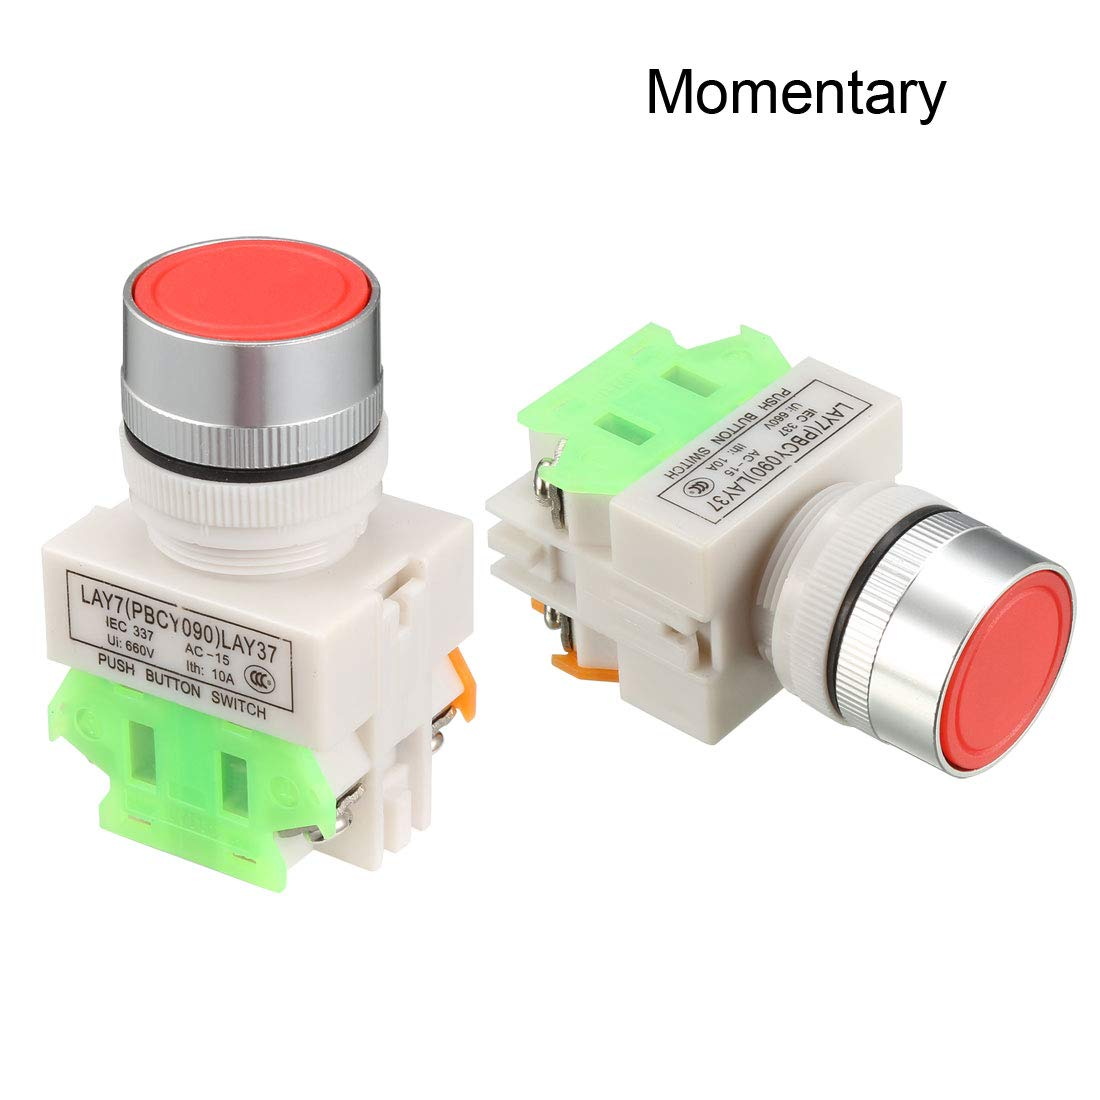 uxcell 23mm Mounting Hole Green Sign Emergency Stop Push Button Switch 1pcs